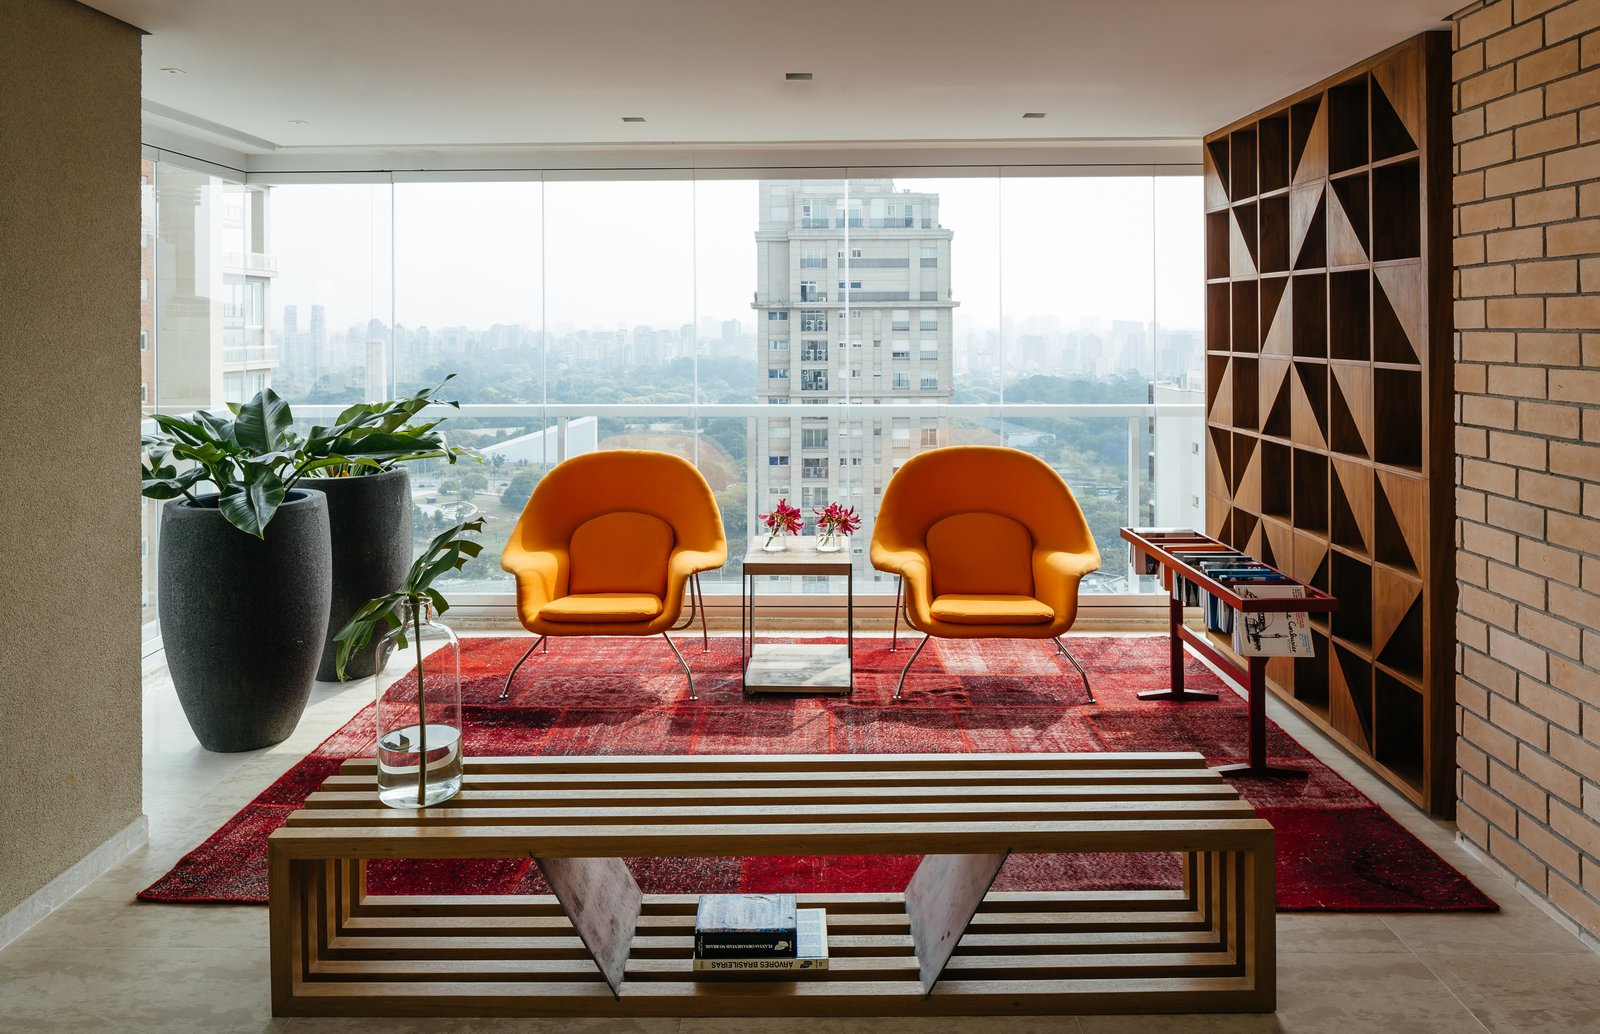 Two Womb chairs by Eero Saarinen for Knoll and a Ring bench by Castro structure a reading area in the enclosed terrace. Tagged: Living Room, Chair, Bench, Console Tables, Coffee Tables, End Tables, Table, Ceiling Lighting, Recessed Lighting, and Rug Floor.  Photo 2 of 9 in Overlooking a Niemeyer Masterpiece, This Flat is Filled with Brazilian Modern Gems